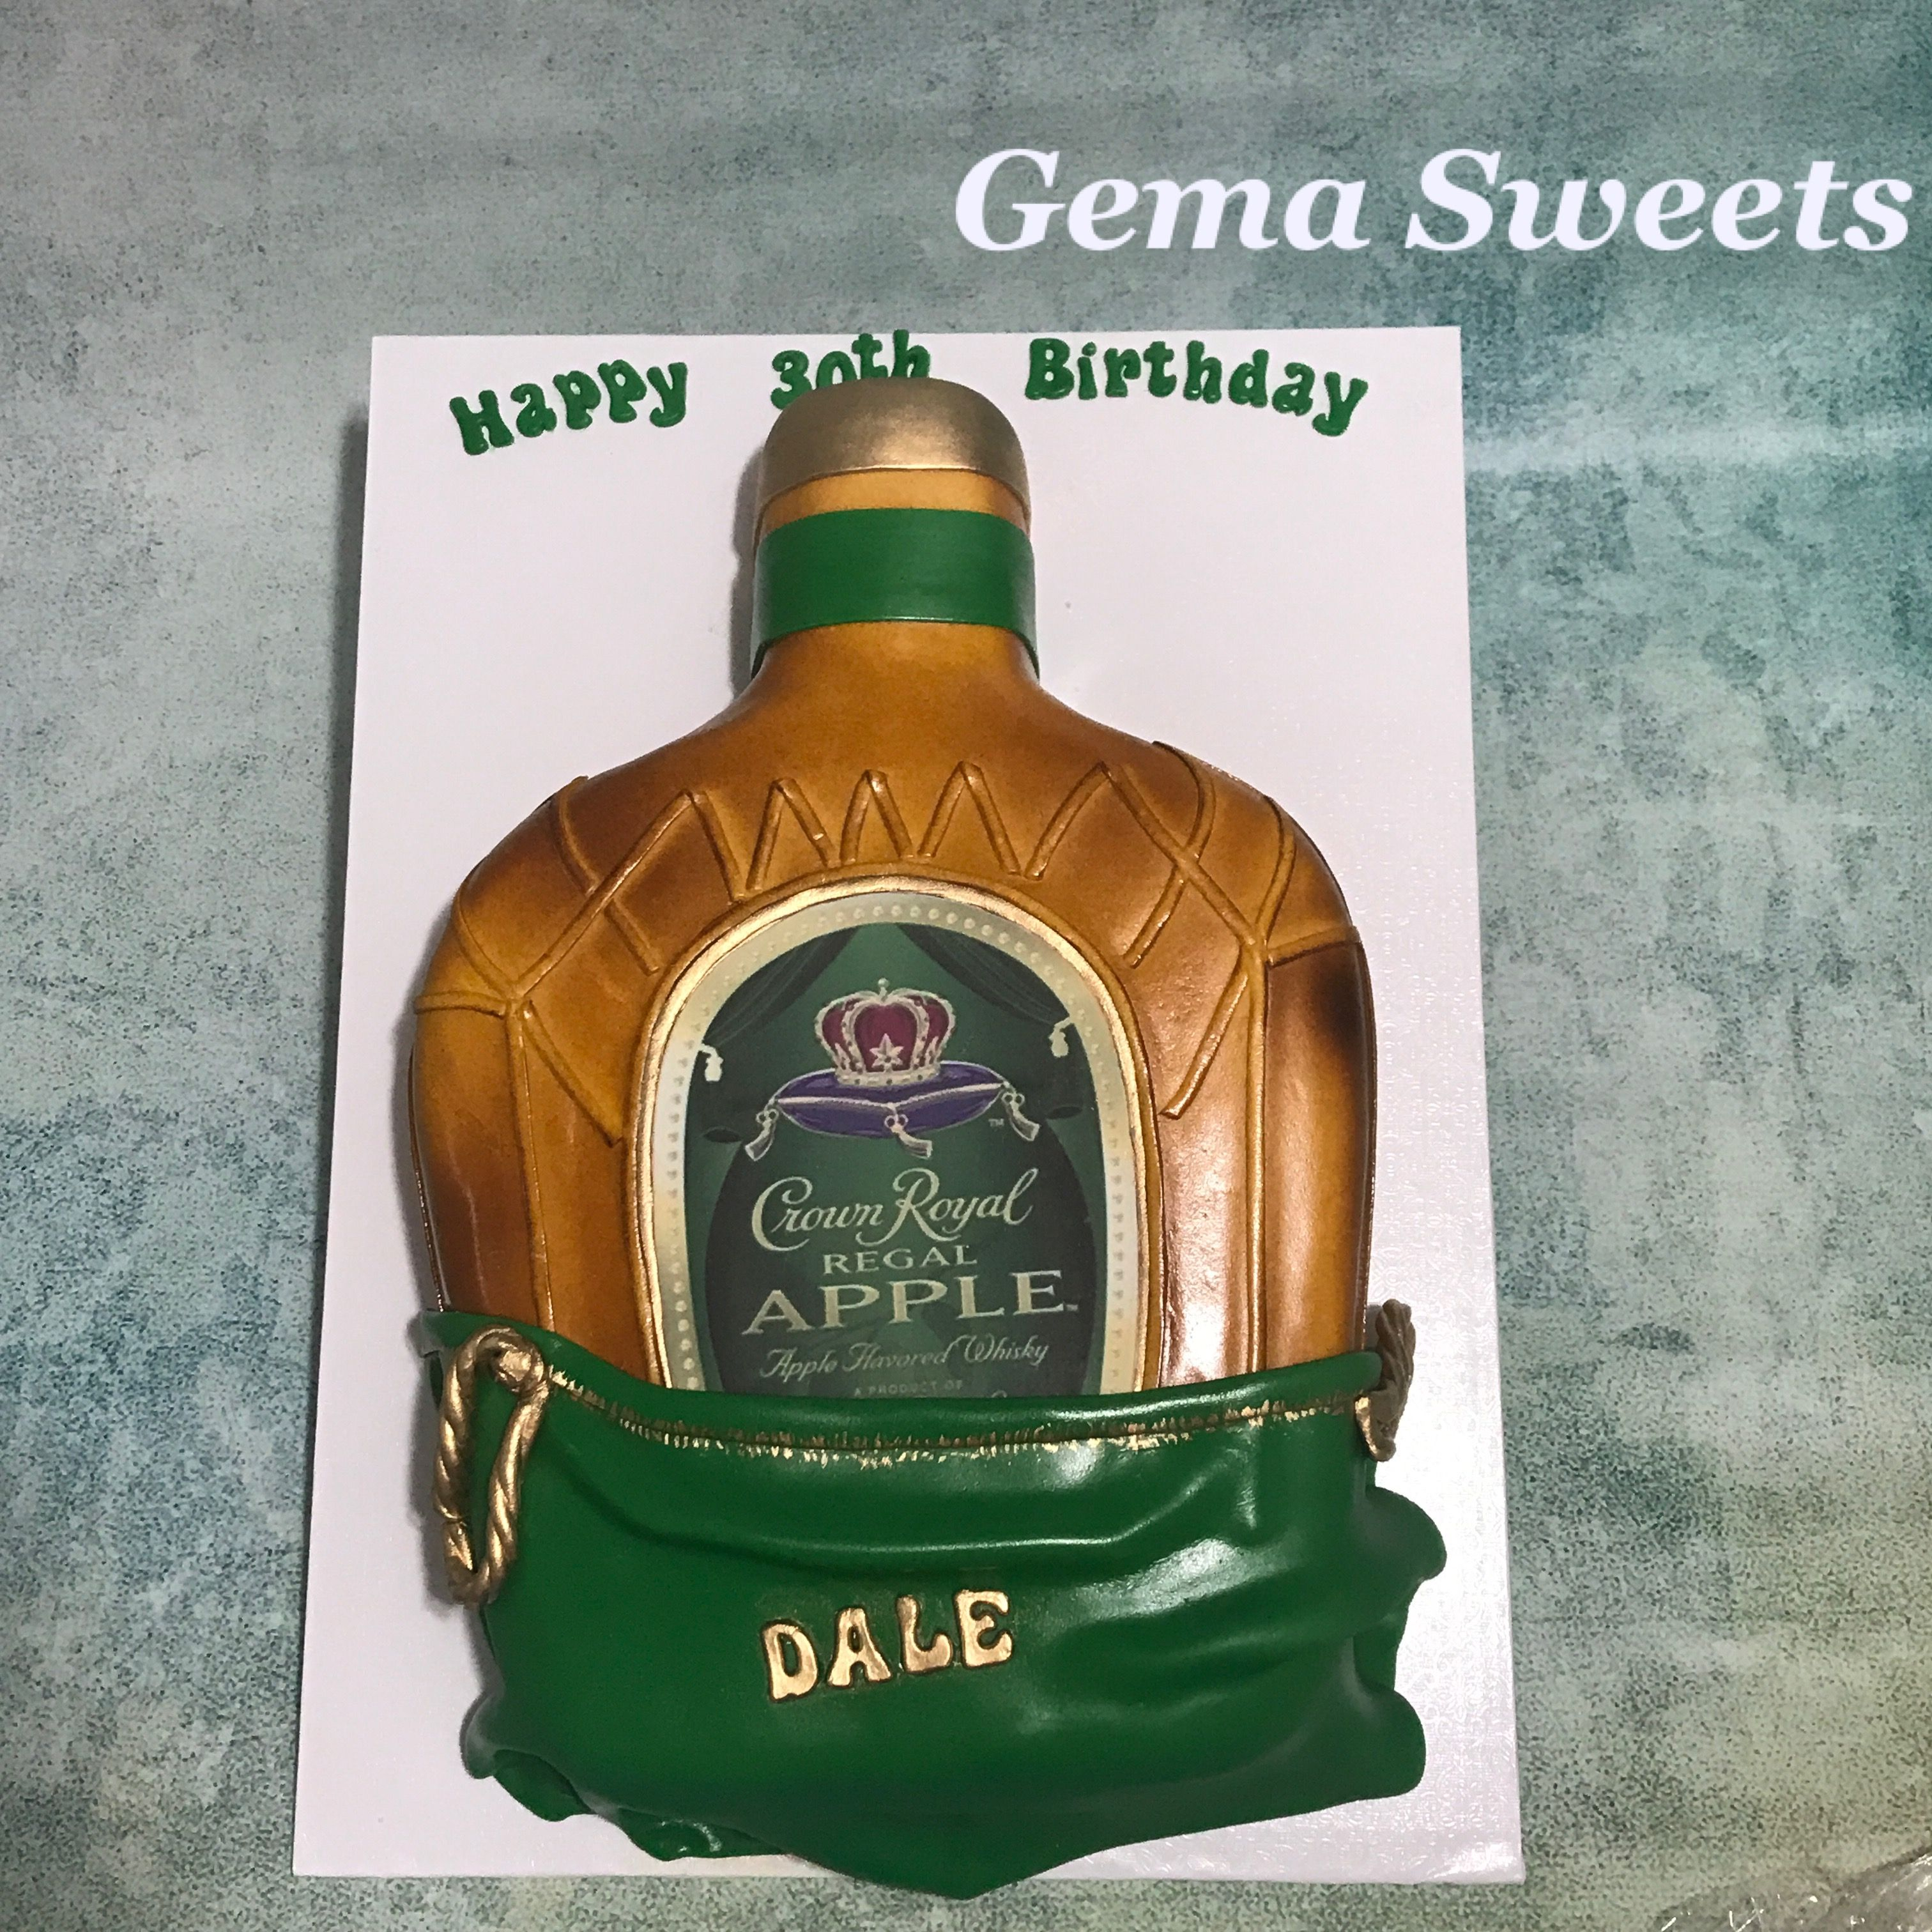 Crown Royal Regal Apple whiskey bottle cake by Gema Sweets.